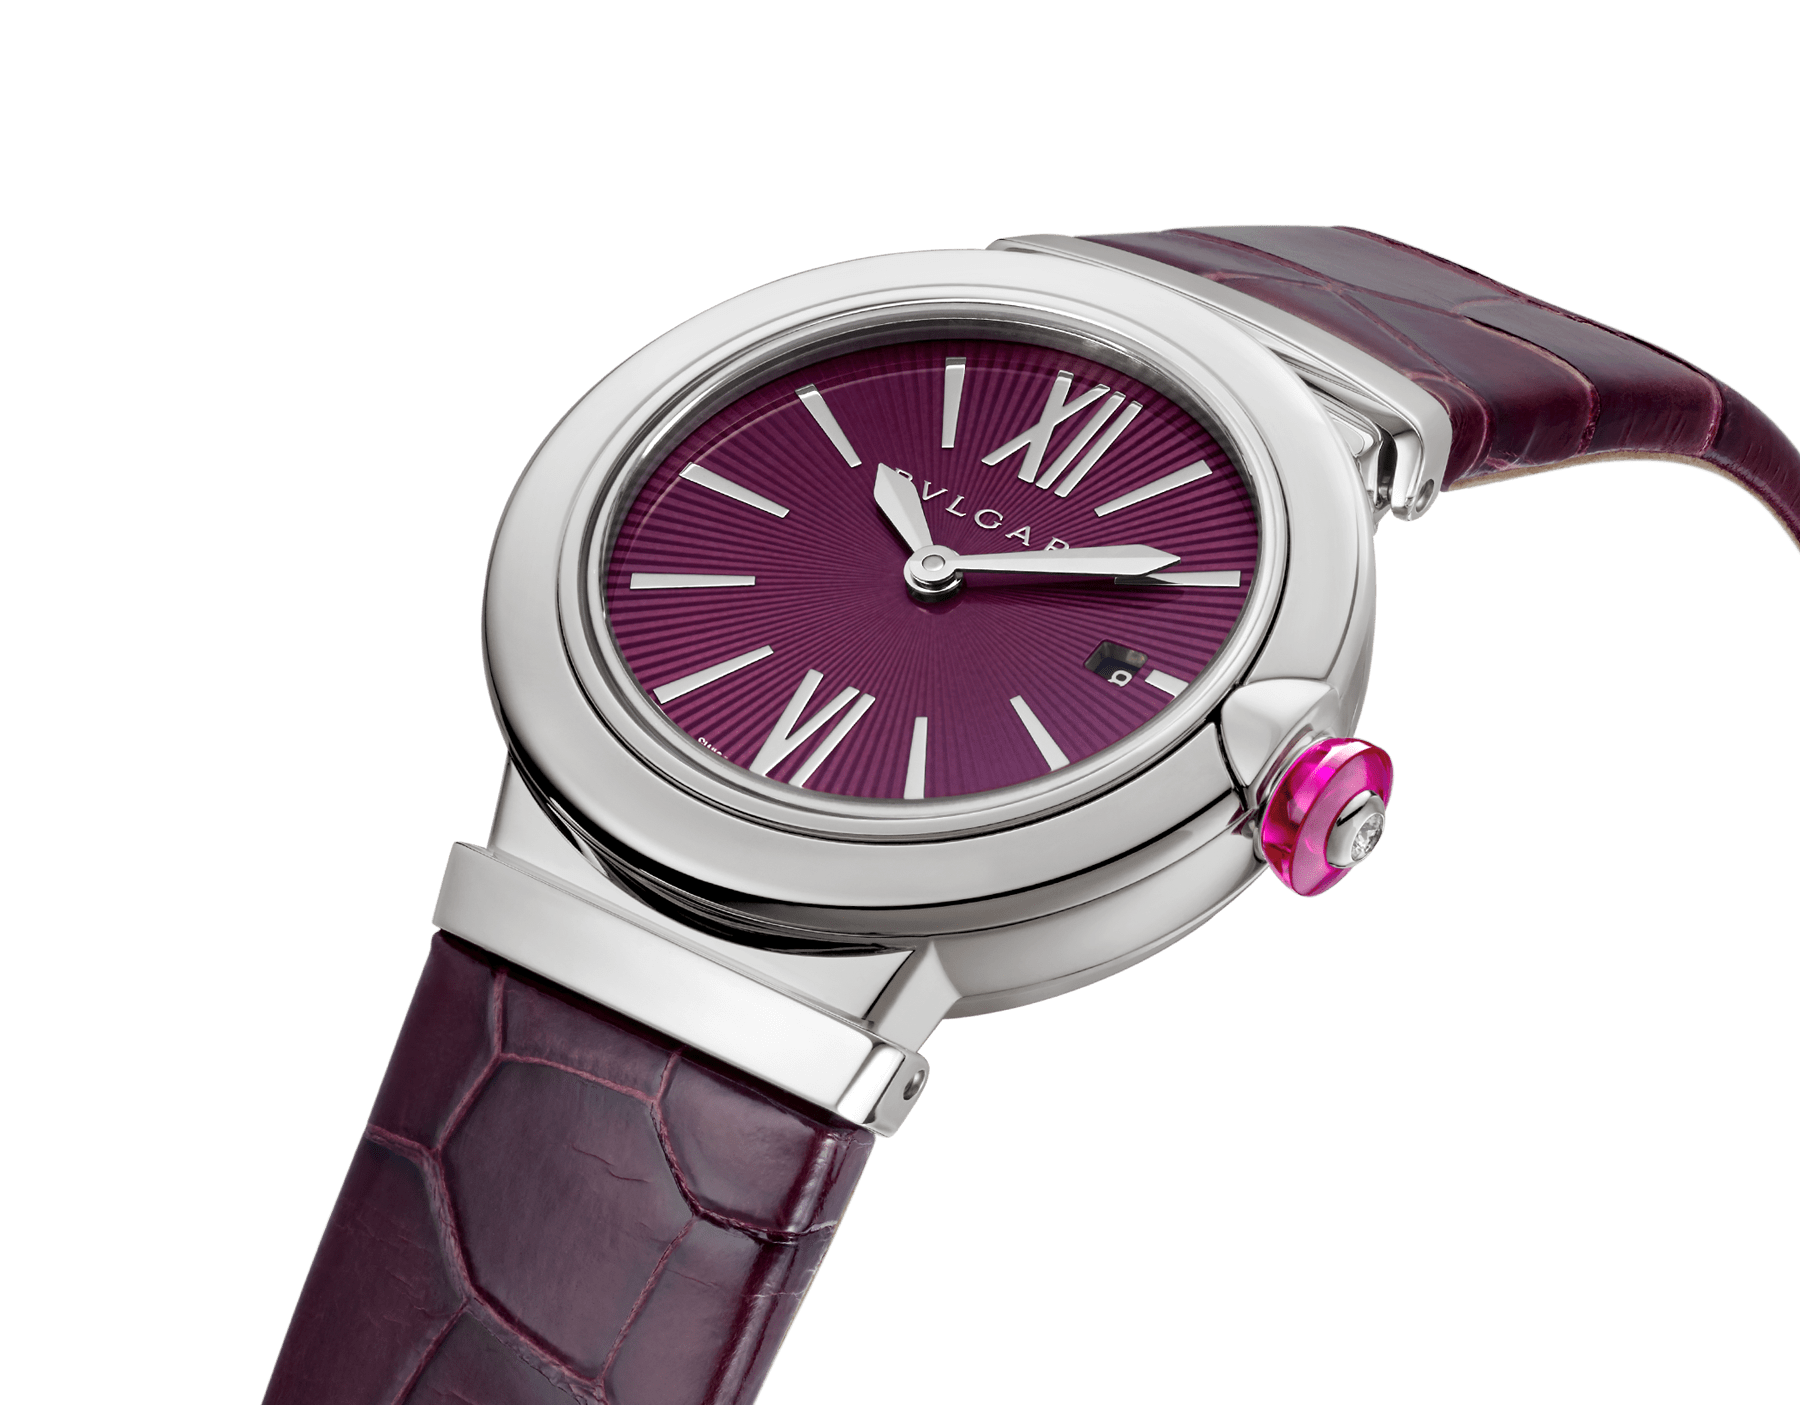 LVCEA watch with stainless steel case, violet dial and purple alligator bracelet. 102566 image 2